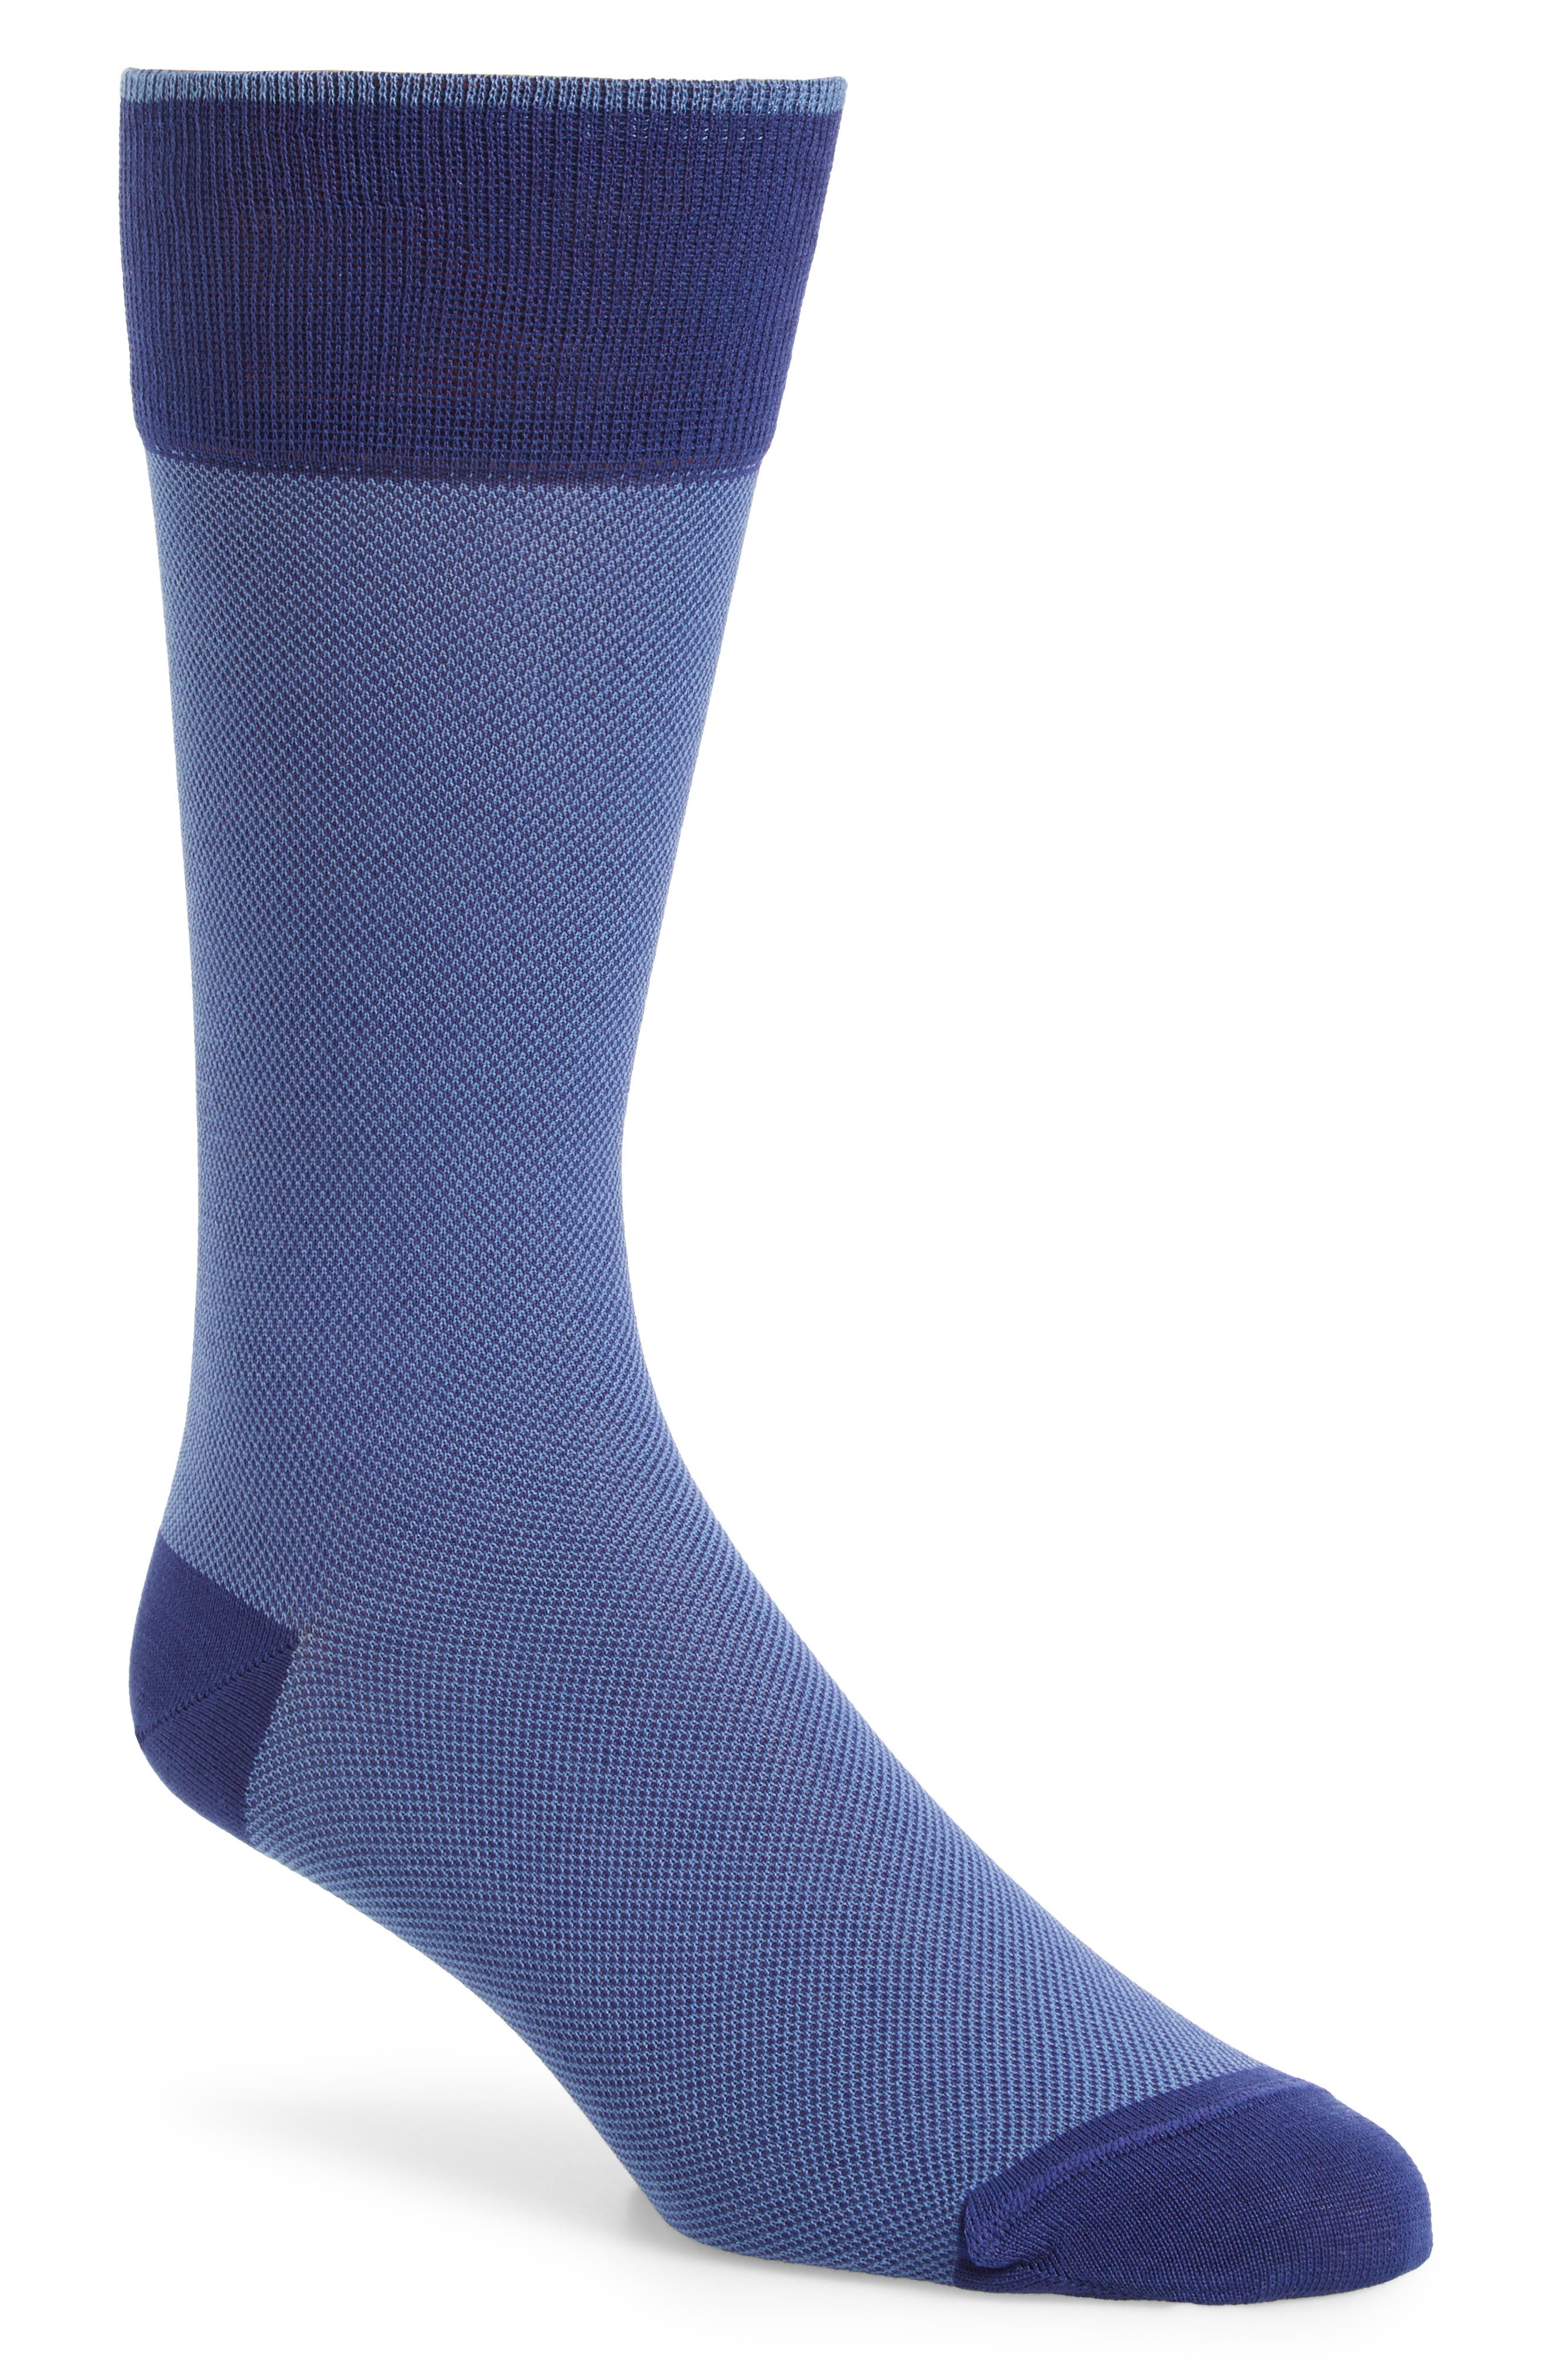 Alternate Image 1 Selected - Calibrate Solid Socks (3 for $30)